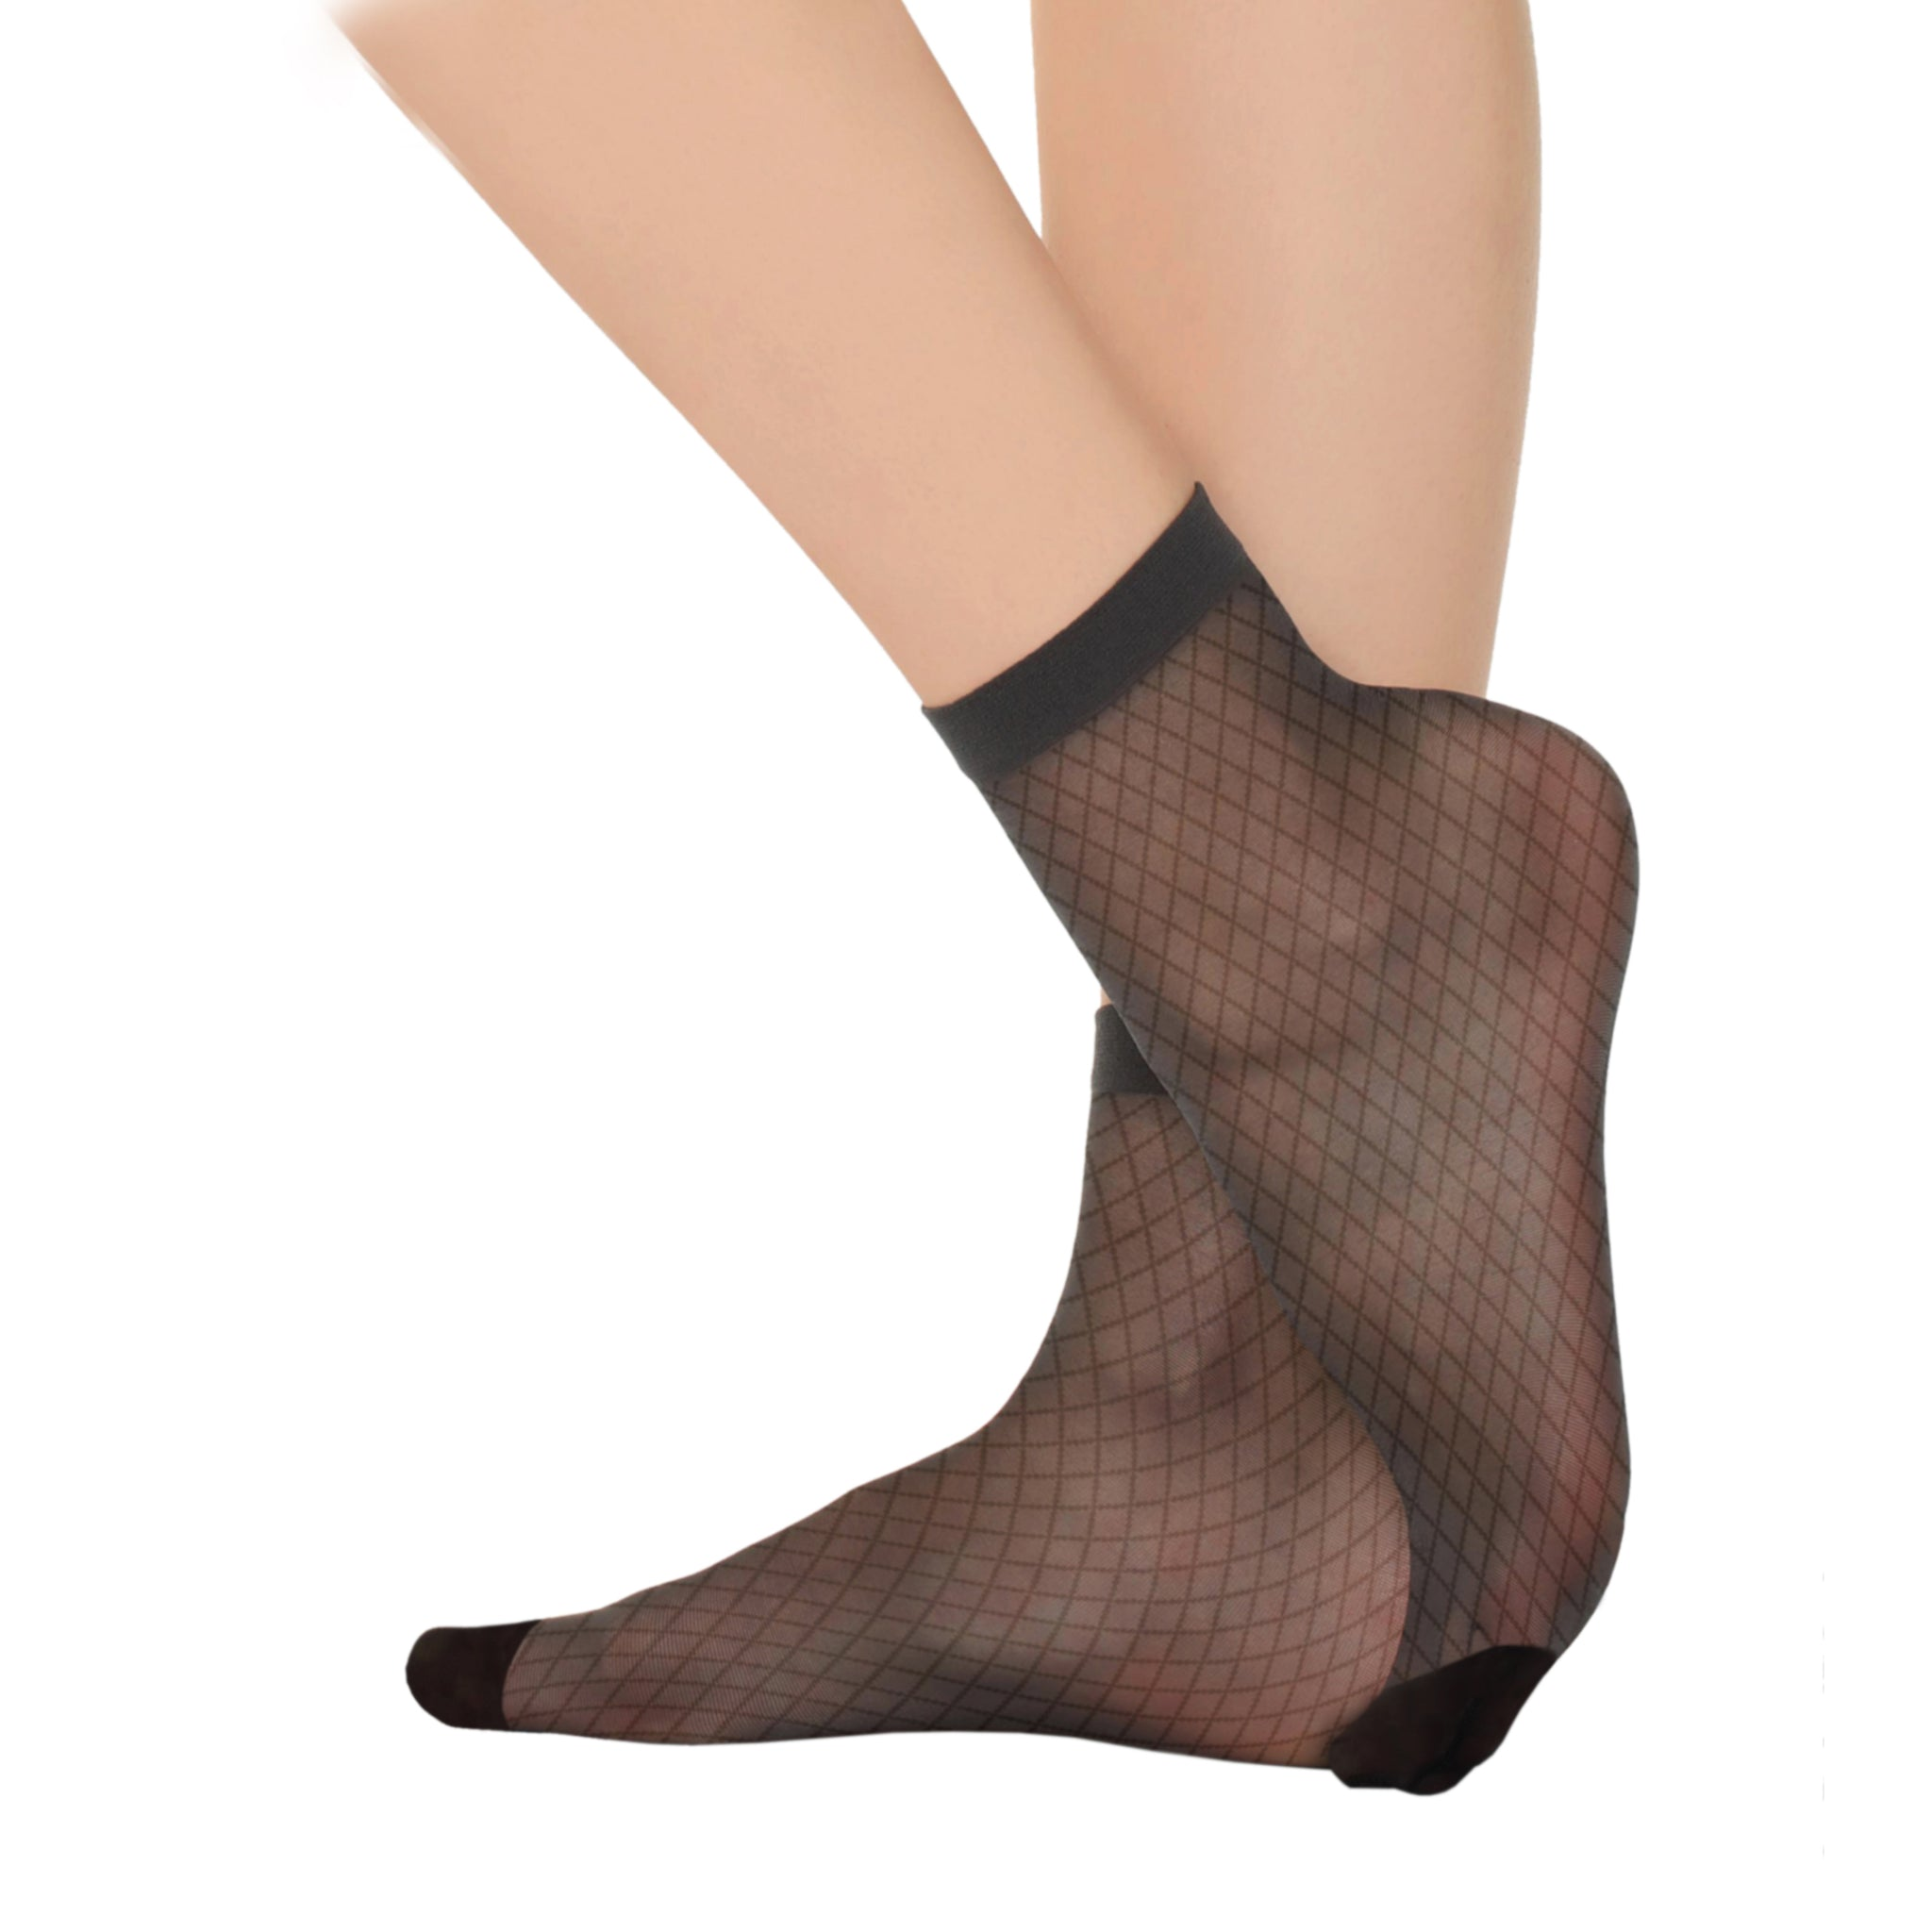 Fashion, Remas Style, Ultra Sheer 20 Den Patterned Socks